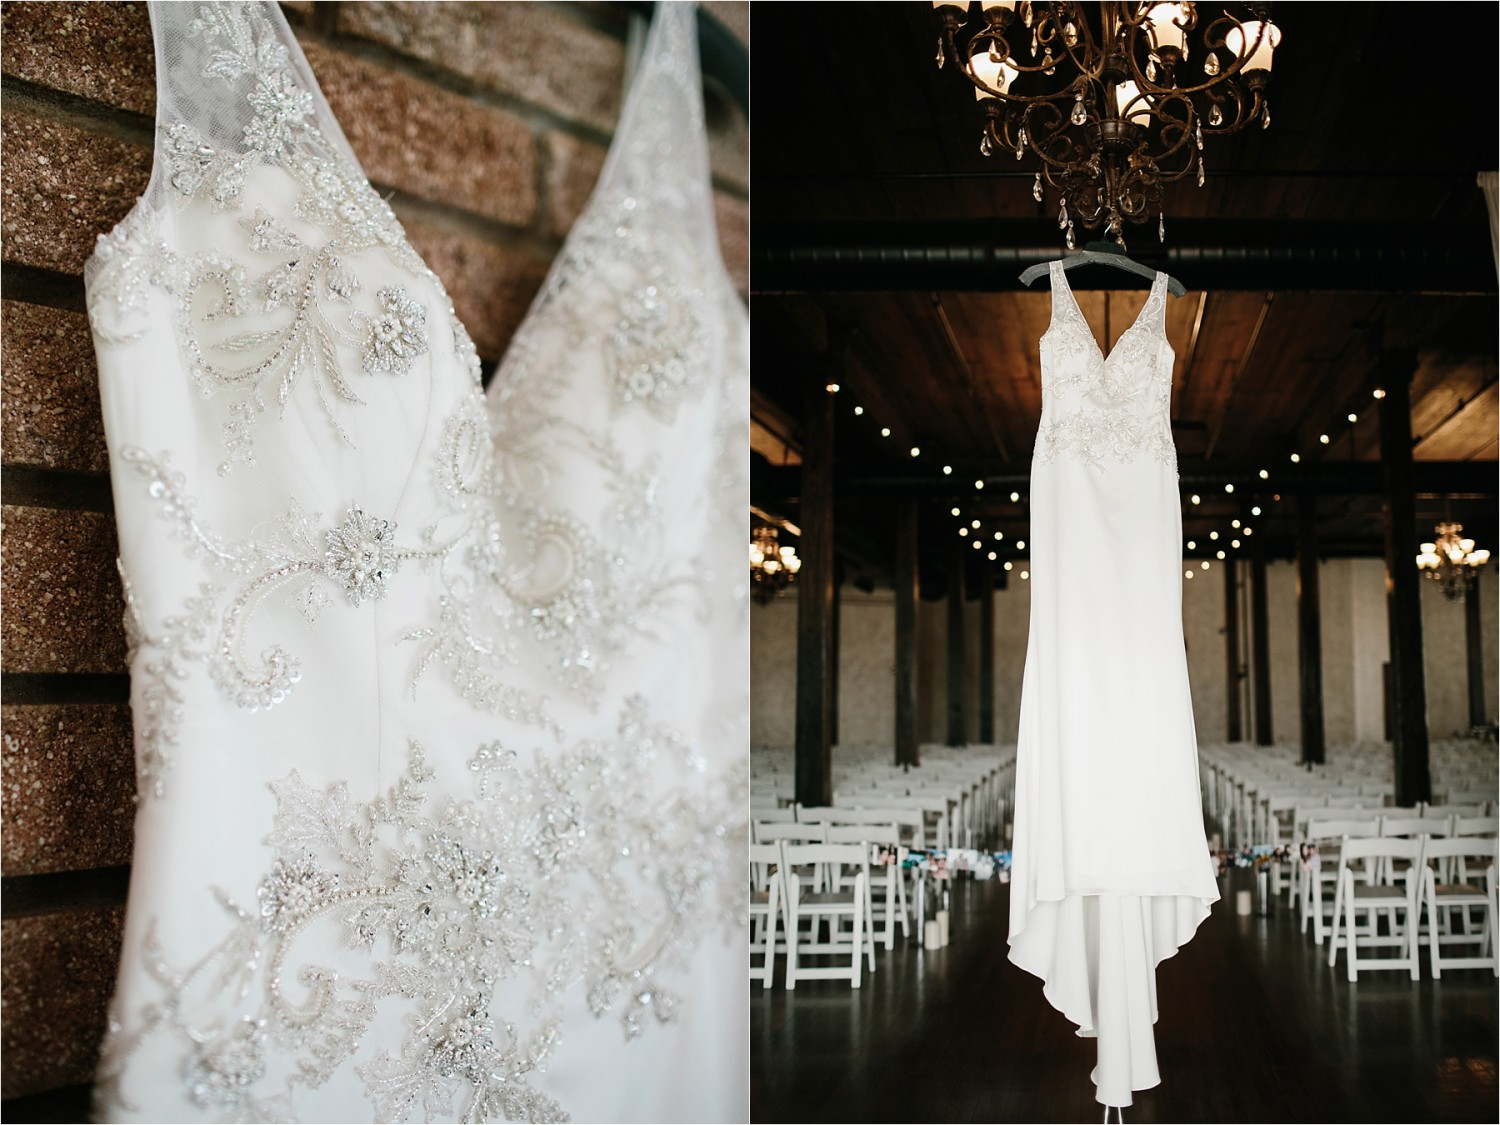 Holly + Jordan __ a black, gold, and greenery organic wedding at The Phoenix Ballroom in Waco, TX by North Texas Wedding Photographer Rachel Meagan Photography __ 01